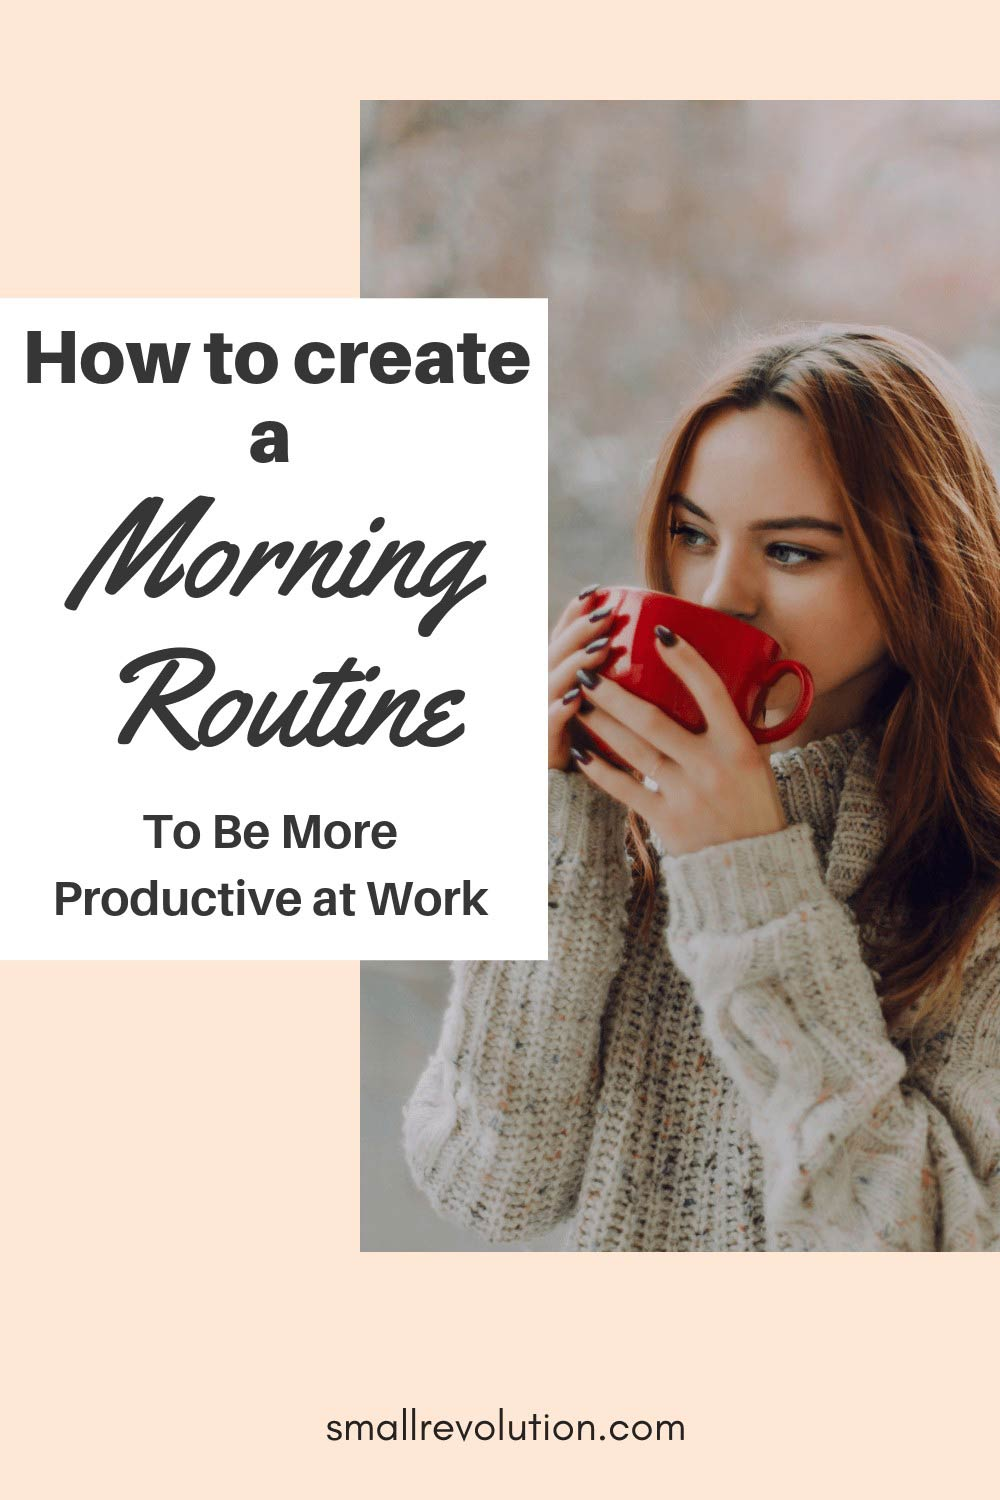 How to create a morning routine to be more productive at work